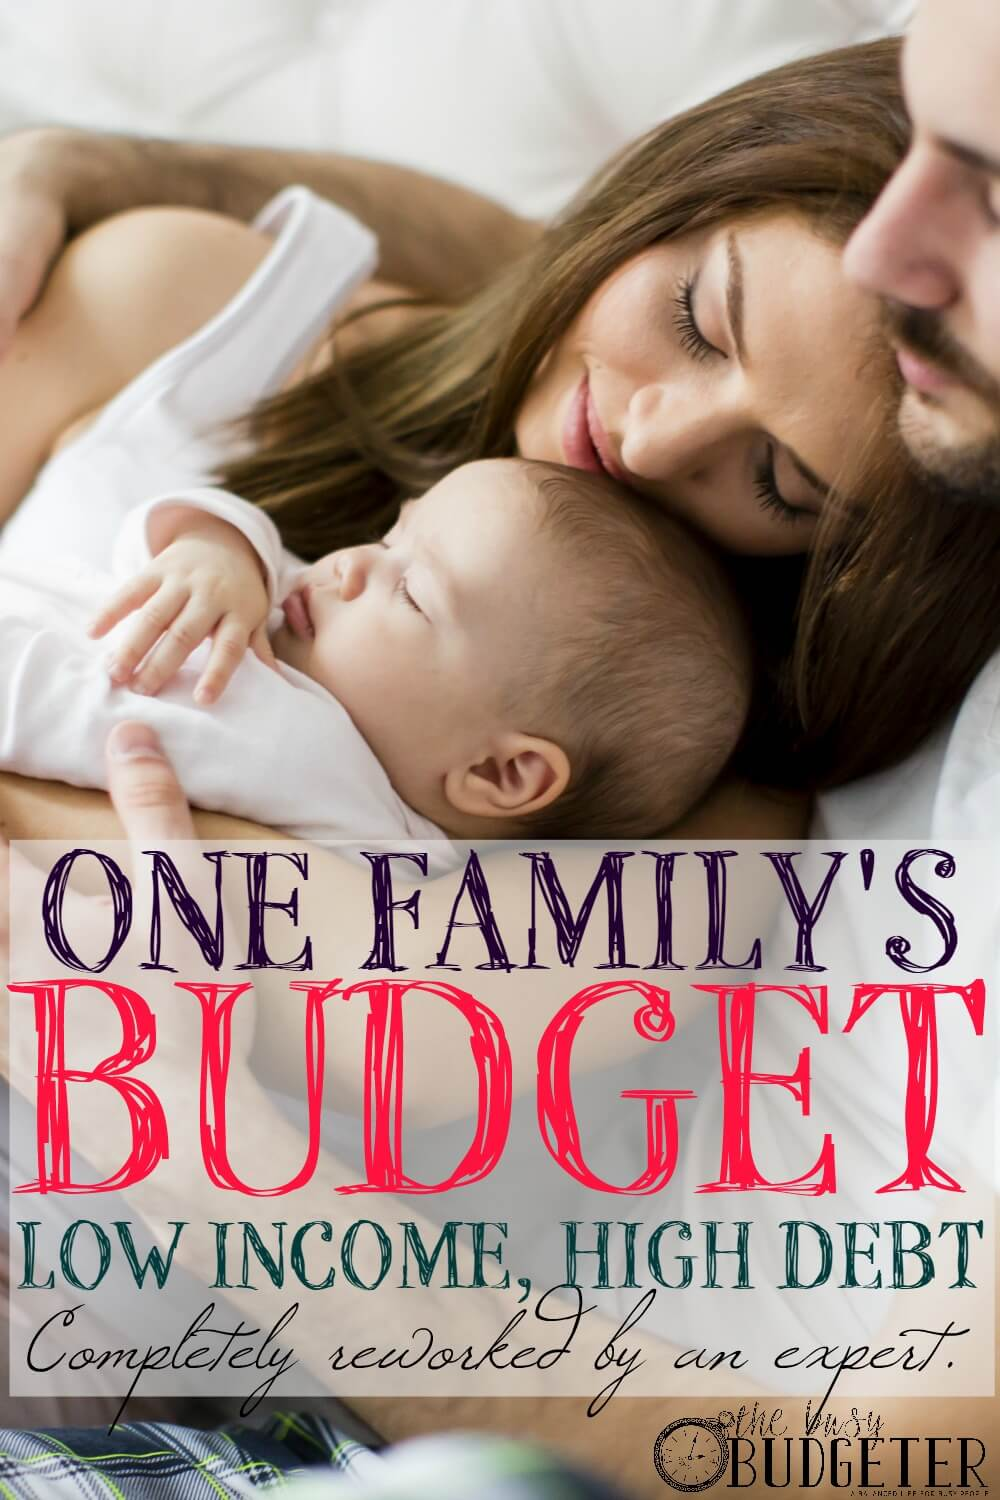 """One Family's Budget with Low Income and High Debt, Completely Reworked into a Long Term Financial Guide by an Expert. THIS IS THE BEST THING I HAVE *EVER* READ ON PINTEREST. I hear about budgets ALL THE FREAKING TIME. But seeing in such an honest and open and incredibly detailed way of every step of it AND How it relates to your actual life. I wish more than anything there were more ways to see this, real numbers, real life and not just a """"Pinterest worthy perfect budget"""" that no one ever sticks to."""